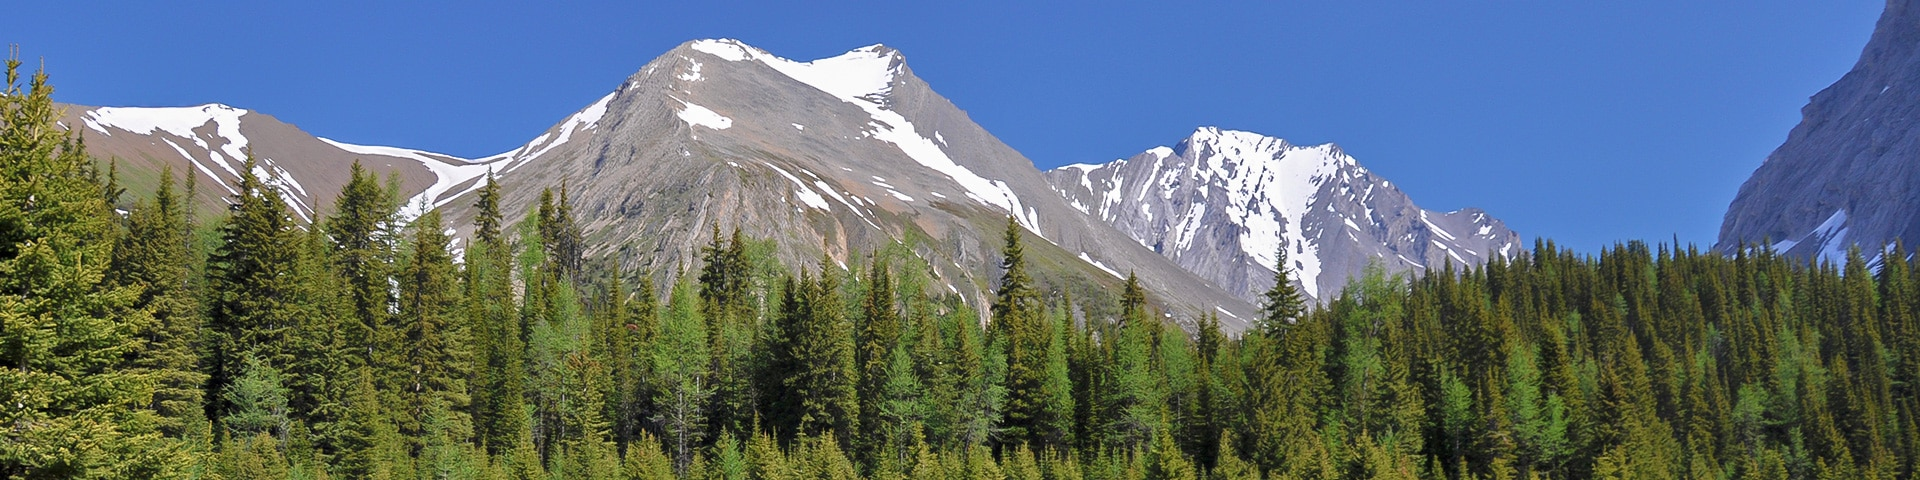 Panorama from the Chester Lake hike from Smith-Dorrien Trail in Kananaskis near Canmore